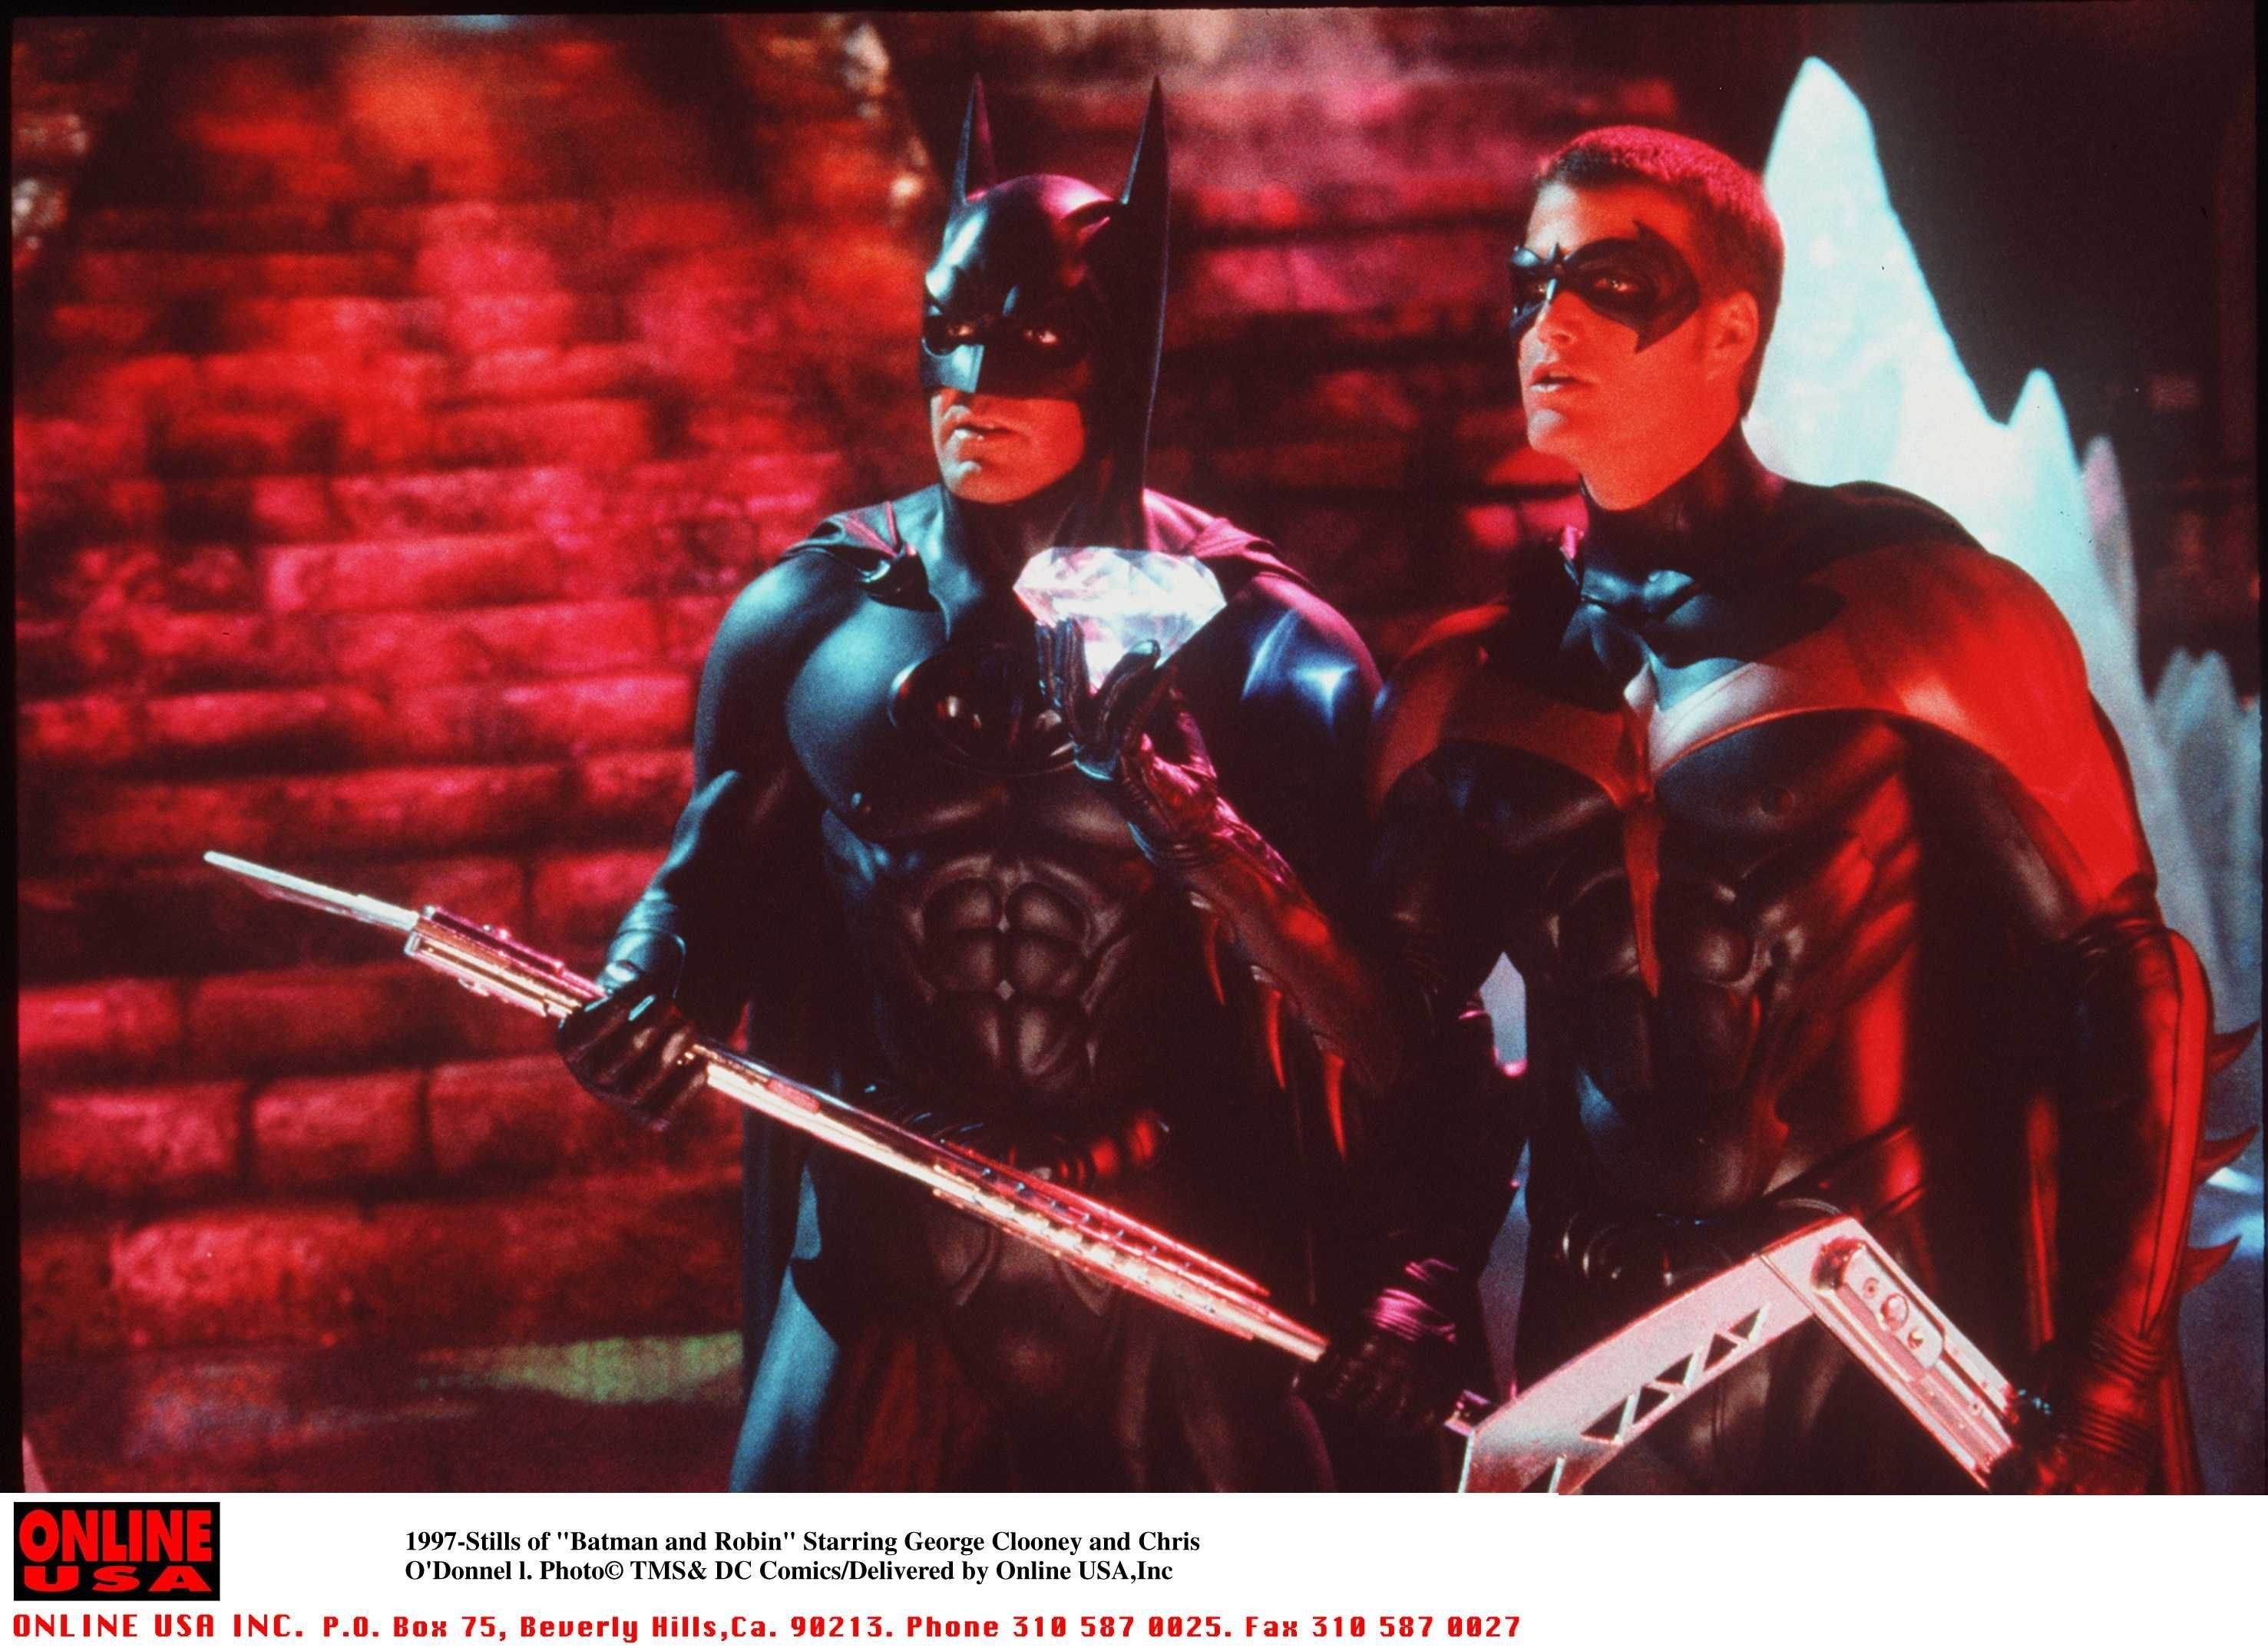 5/27- 'Batman And Robin ' Movie Stills Starring George Clooney And Chris O'Donnell (Photo By Getty Images)